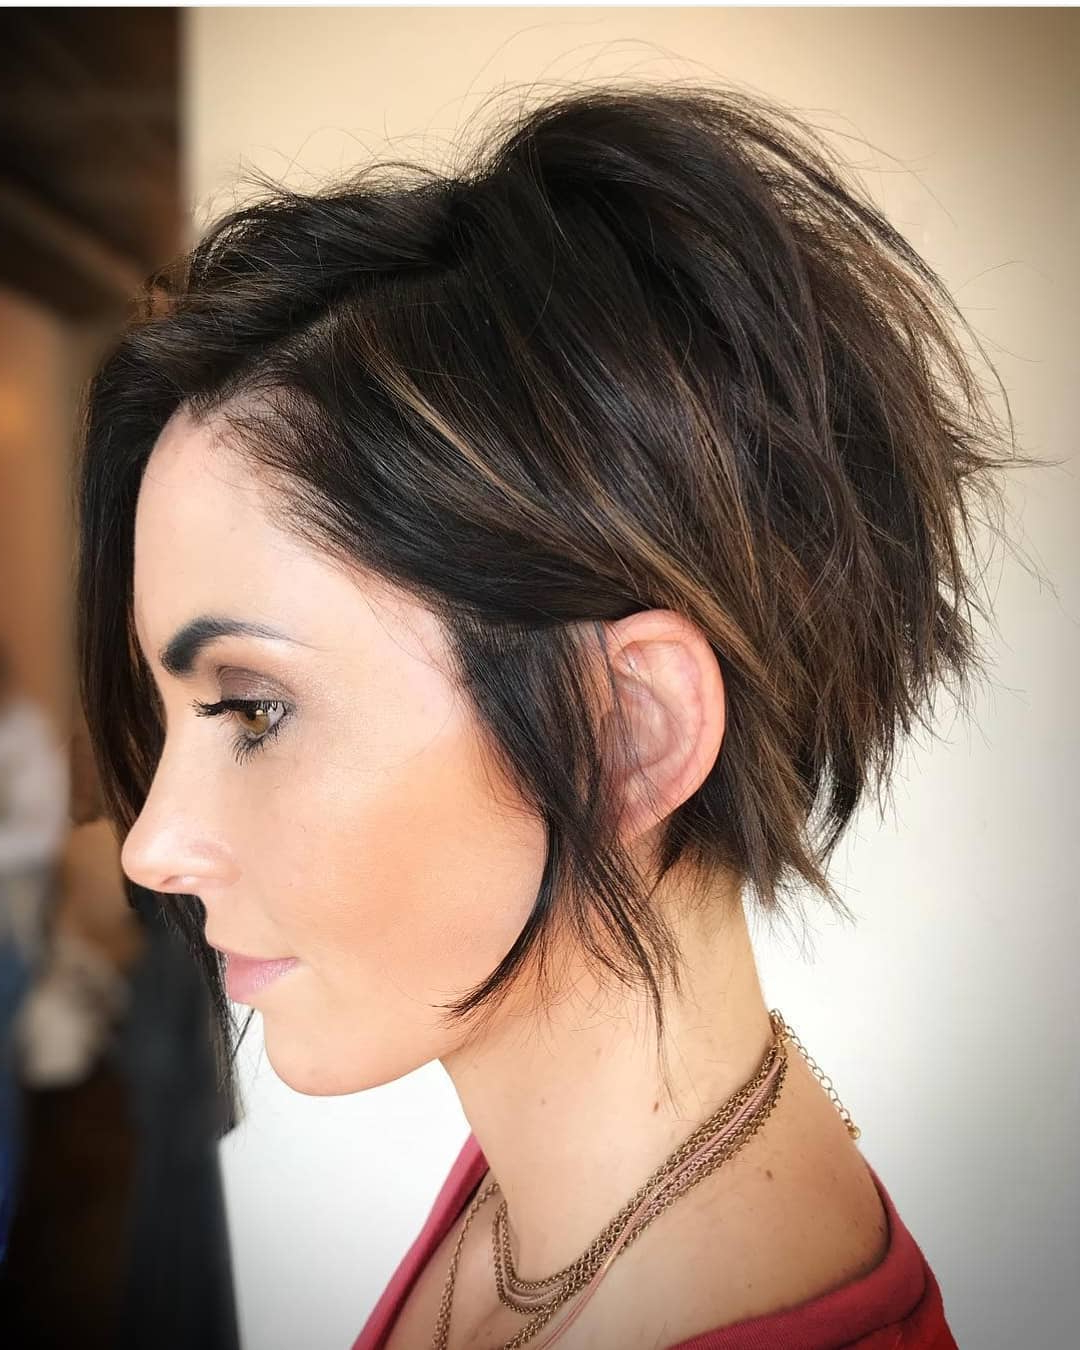 20 Ideas of Trendy Pixie Haircuts With Vibrant Highlights